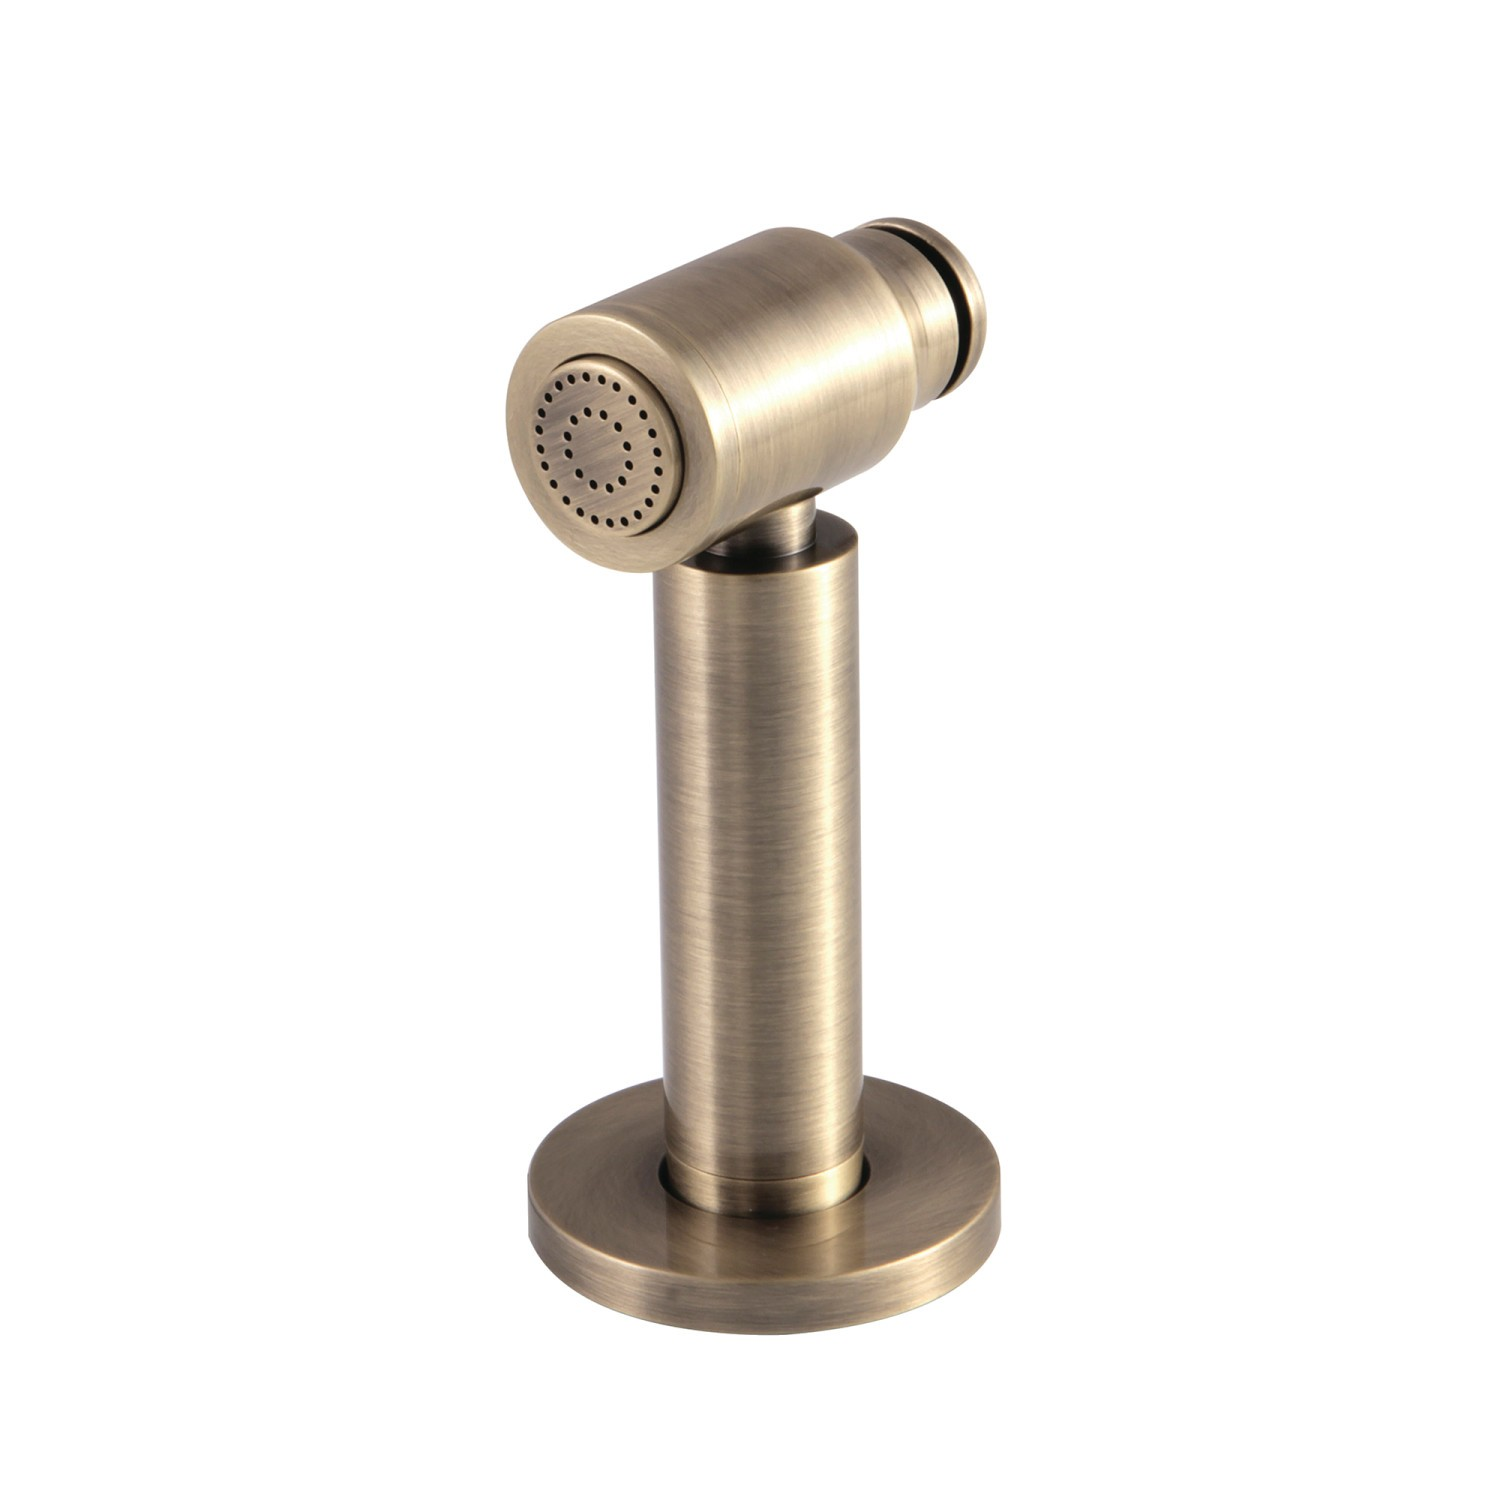 Kingston Brass Ccrp61k8 Concord Kitchen Faucet Side Sprayer Brushed Nickel